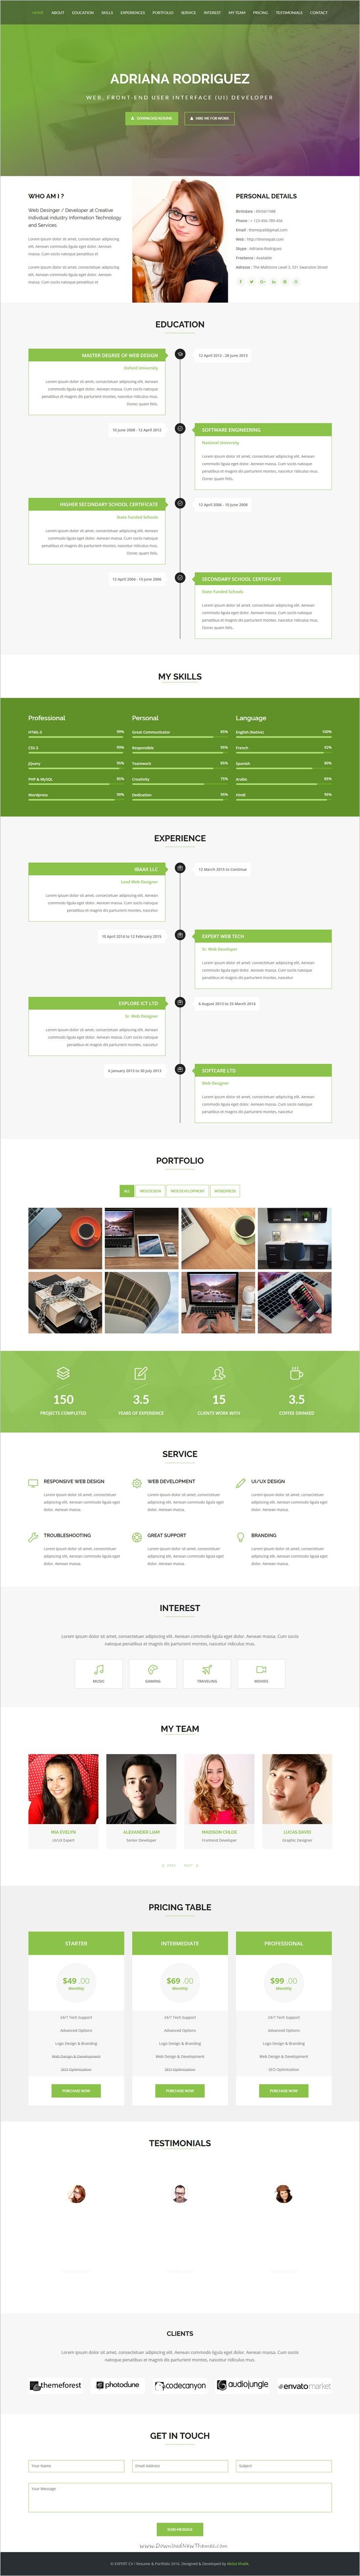 Expert is a one page responsive #HTML5 #Bootstrap template for online #CV, #Resume, vCard & Portfolio websites download now➩ https://themeforest.net/item/expert-cv-resume-portfolio/18927937?ref=Datasata